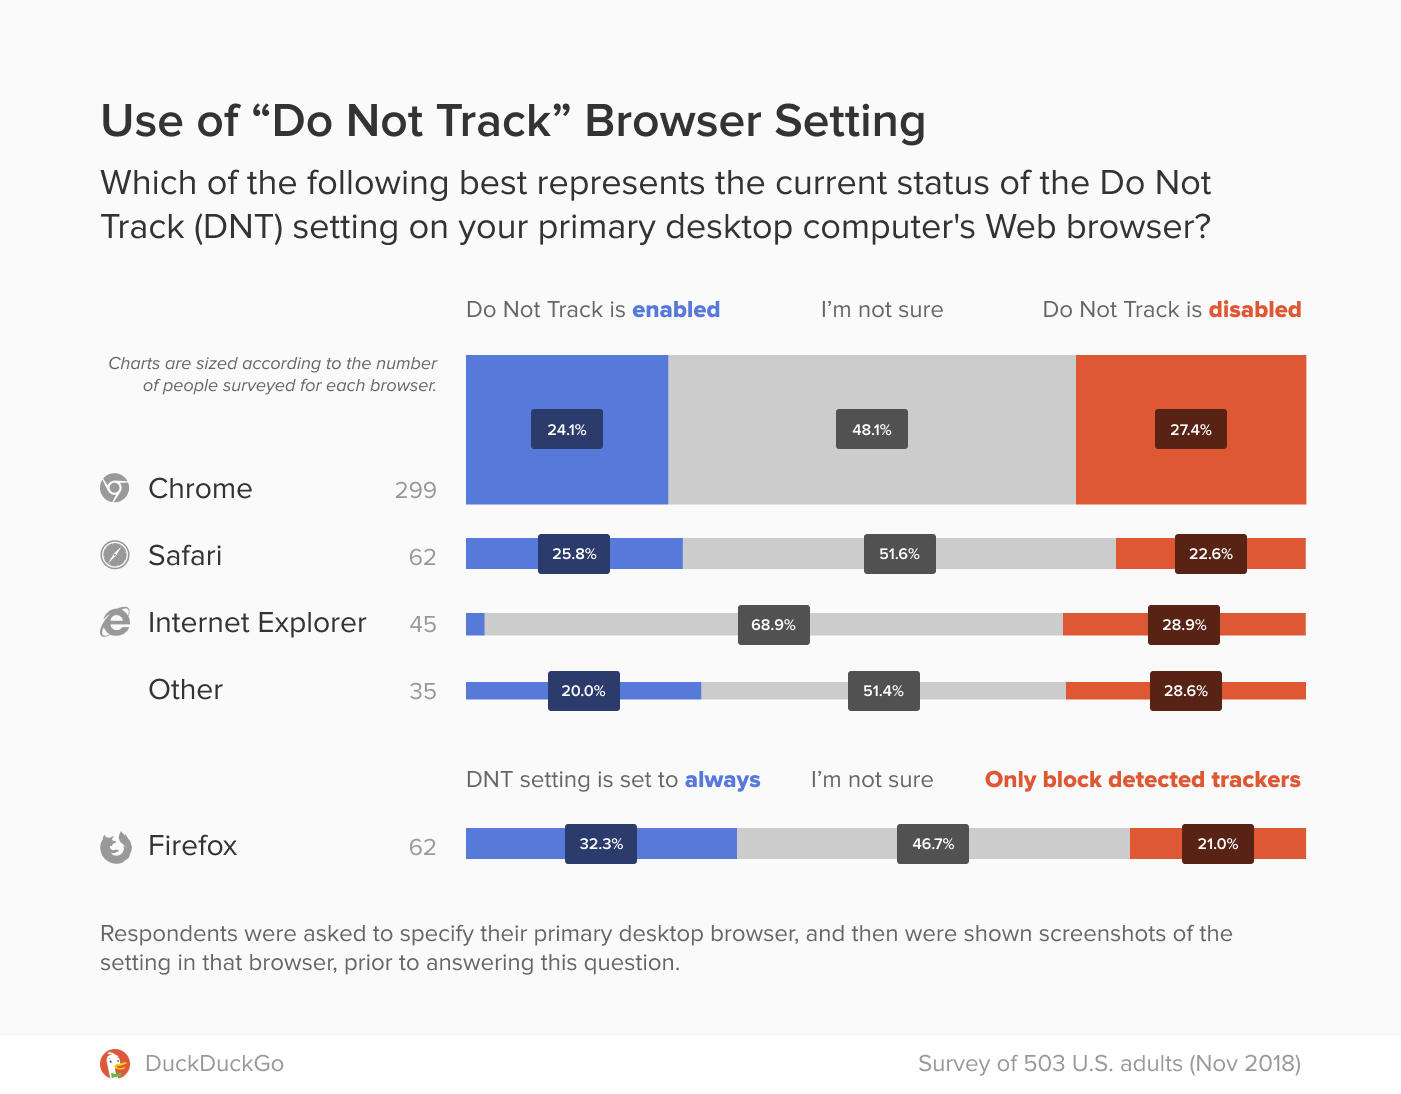 Graph showing survey responses about the current status of the Do Not Track setting in respondent's primary desktop browser